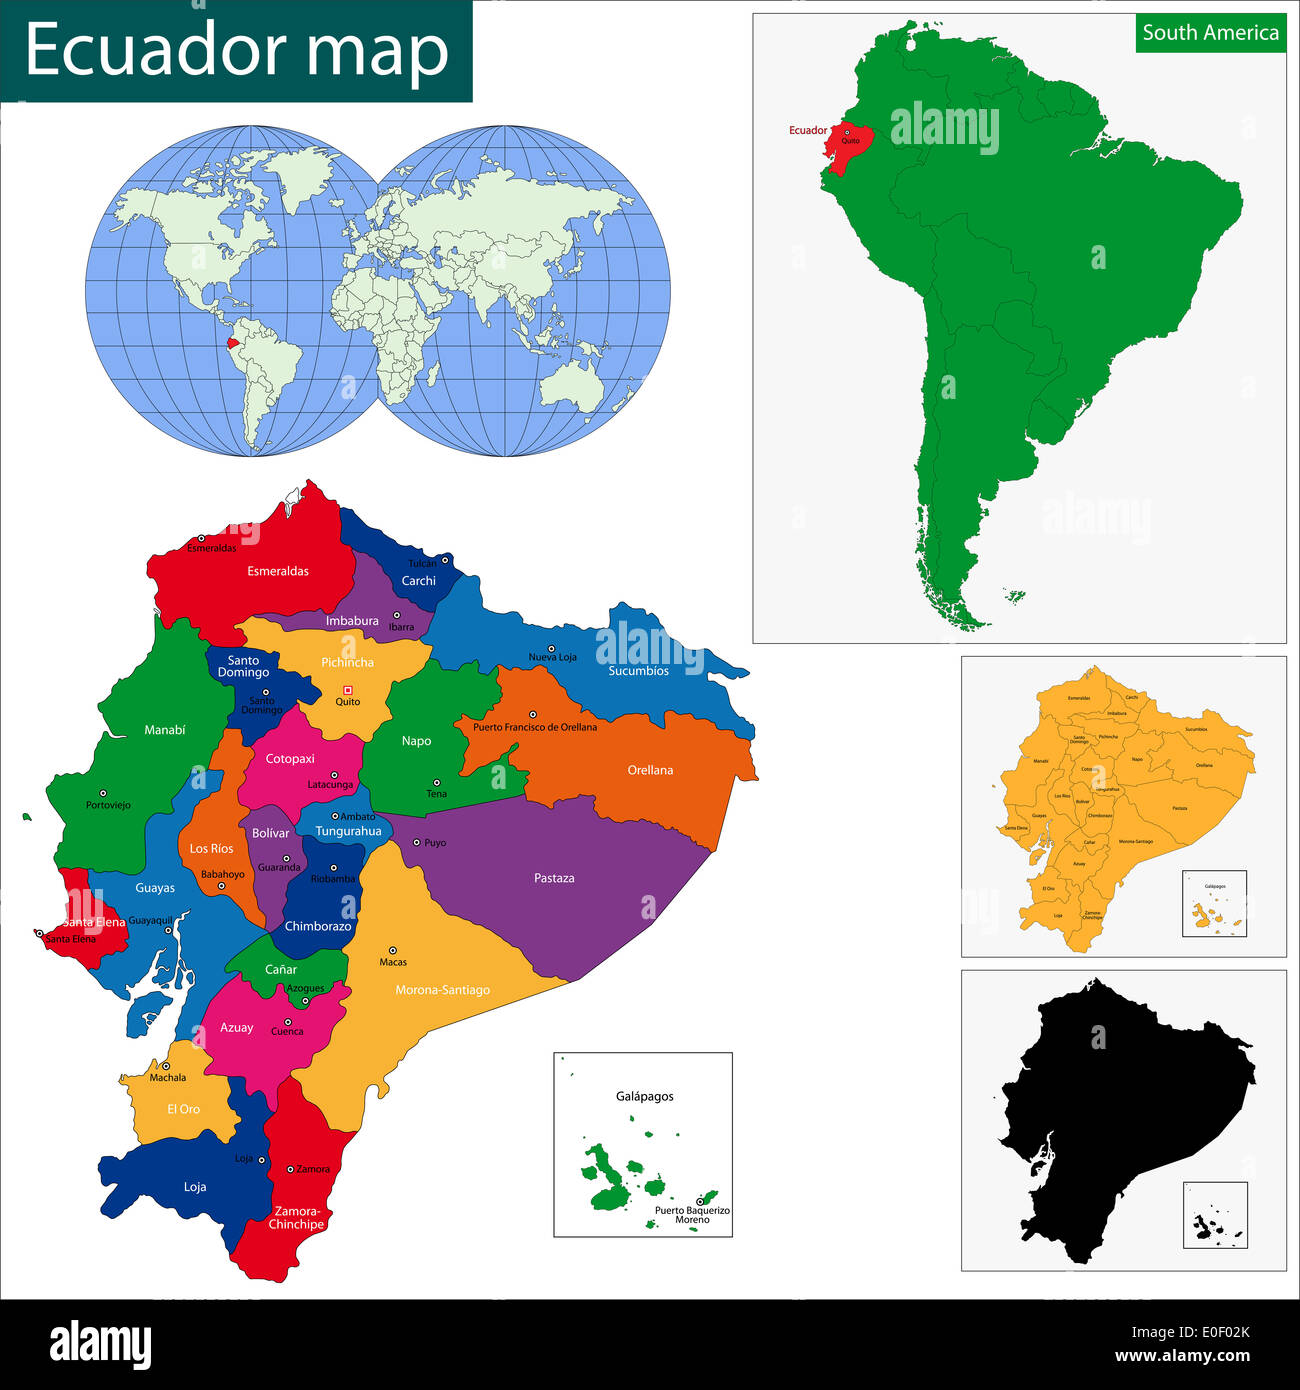 Ecuador Map Stock Photo Royalty Free Image Alamy - Colored outline map of ecuador